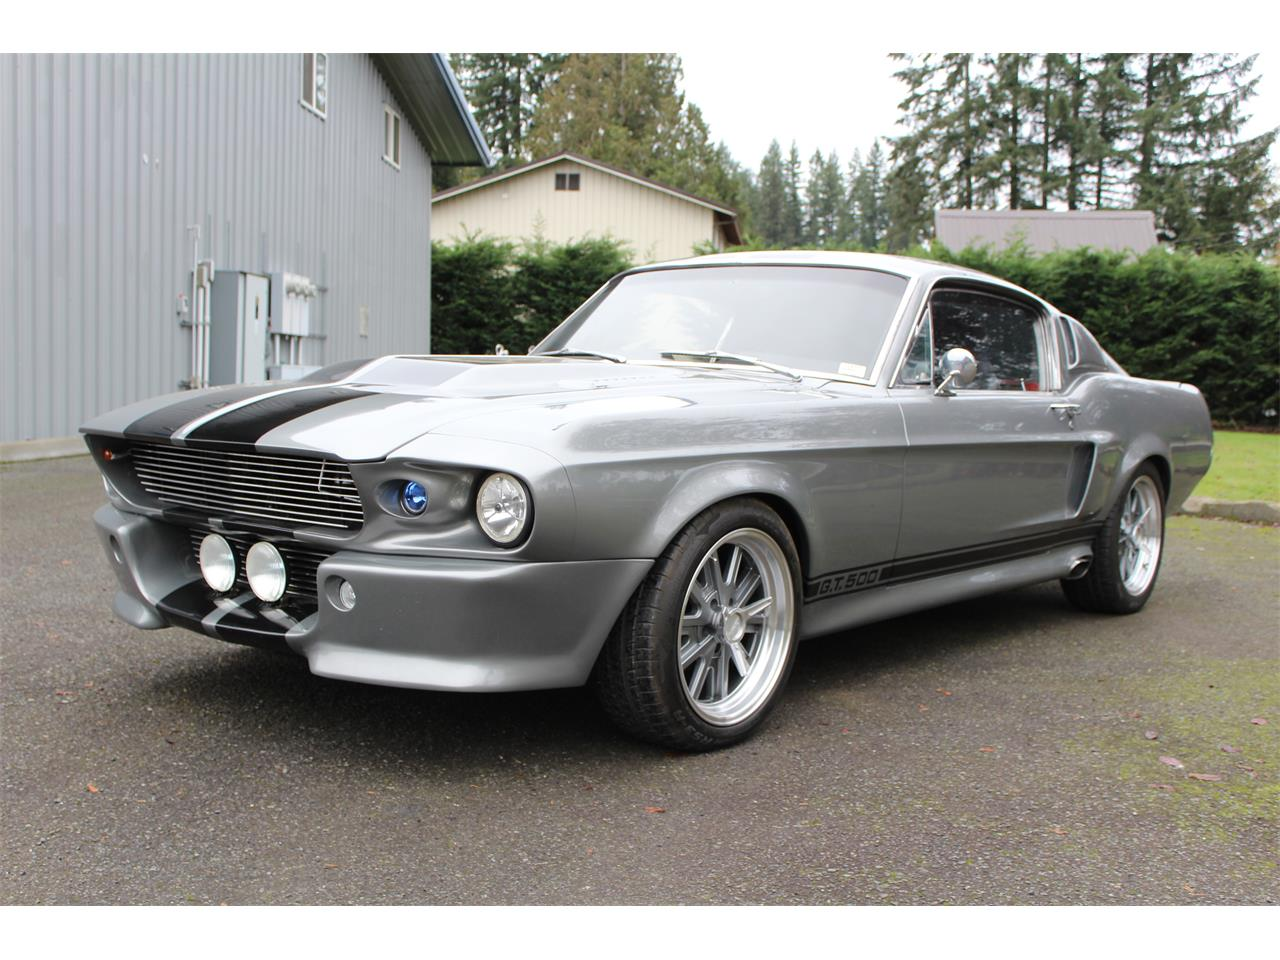 Ford Mustang Fastback 1968 prix tout compris 1968